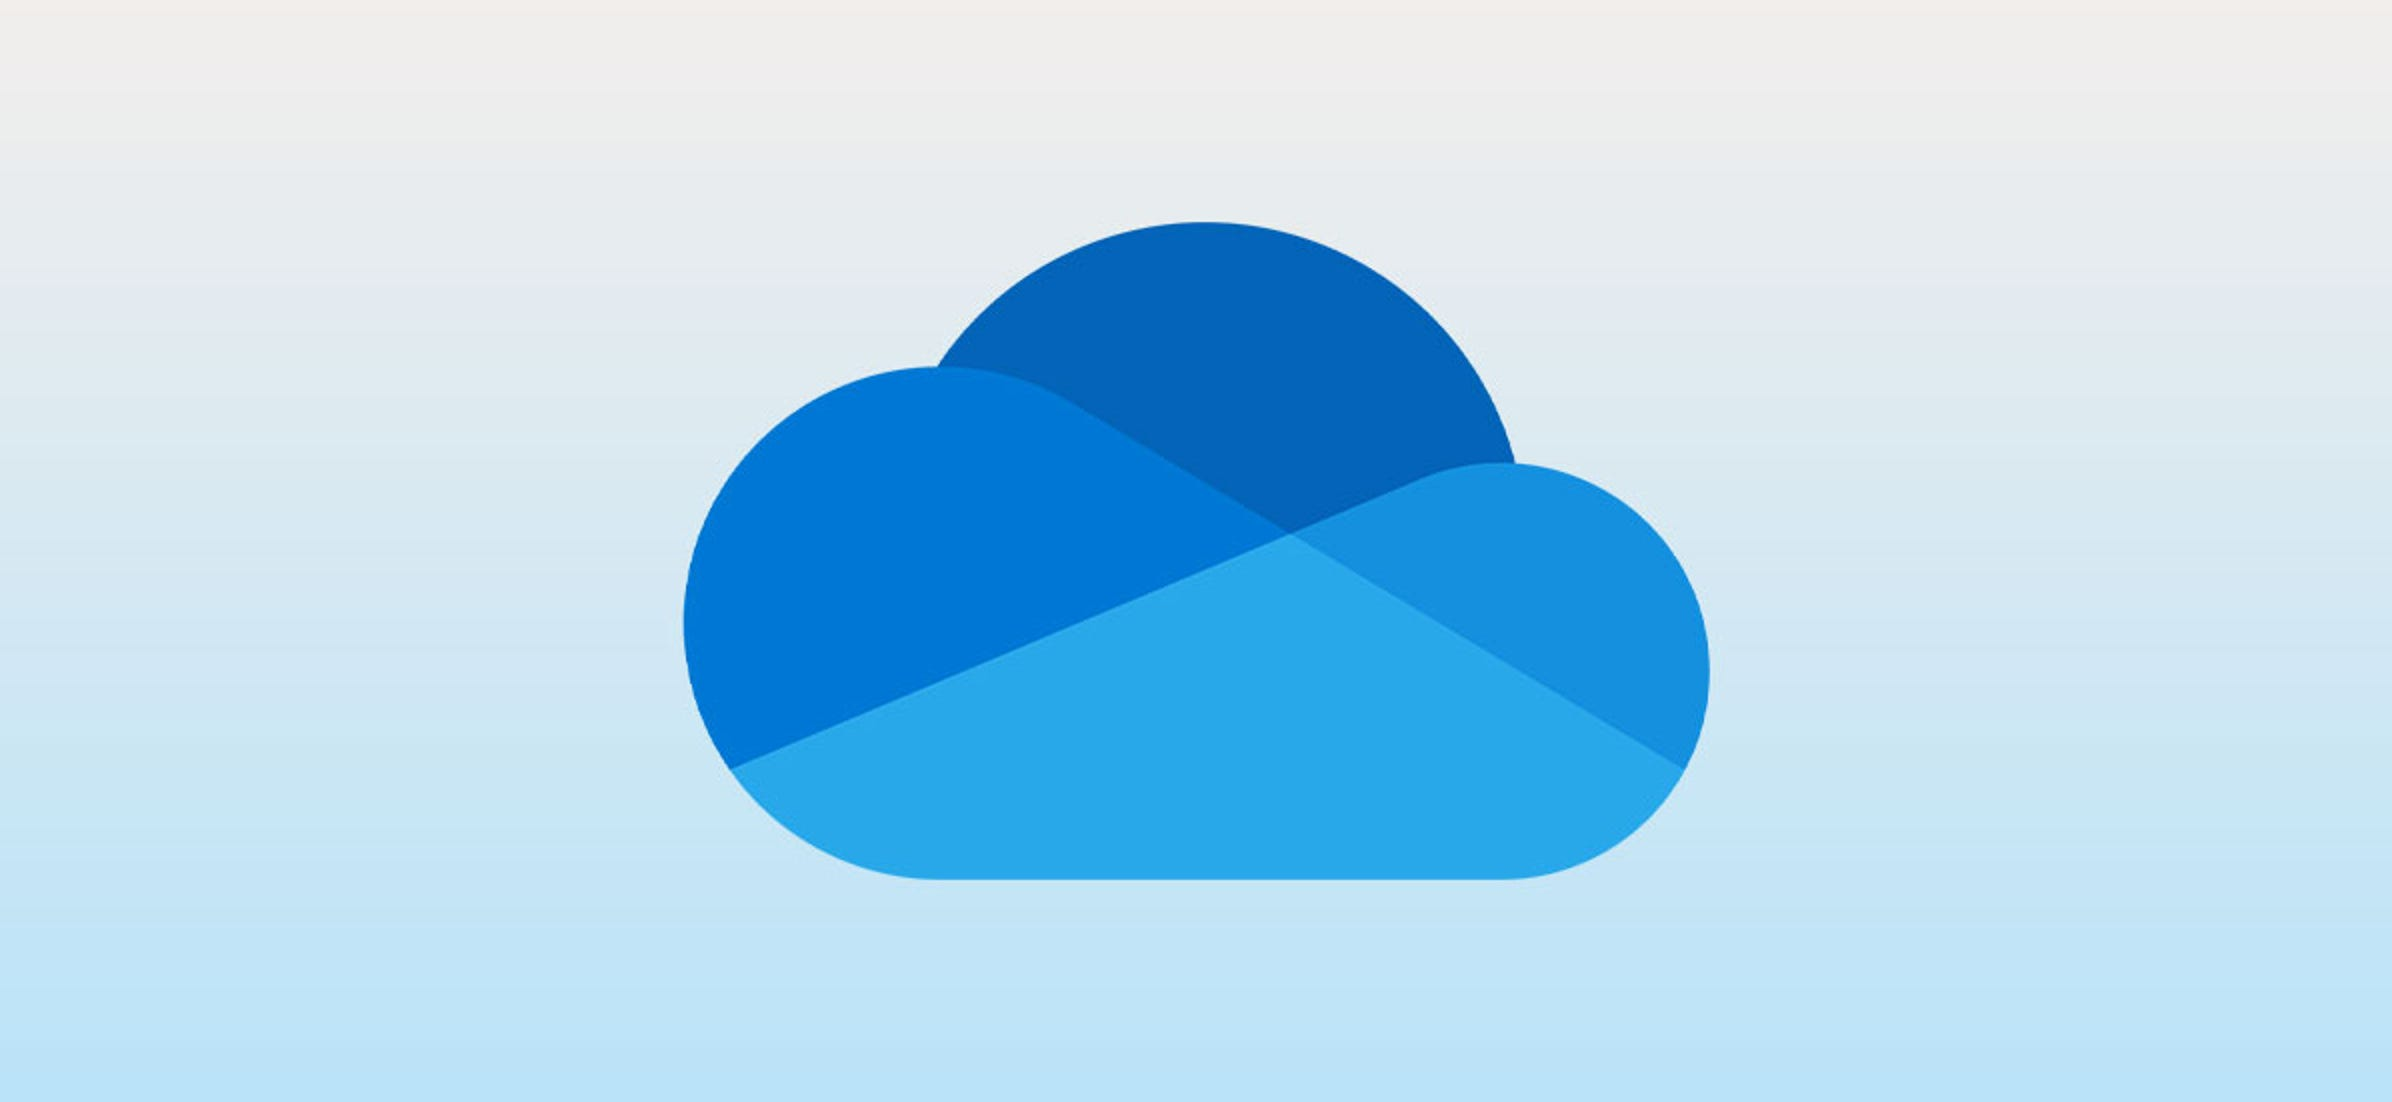 How to Check How Much OneDrive Storage You Have Left